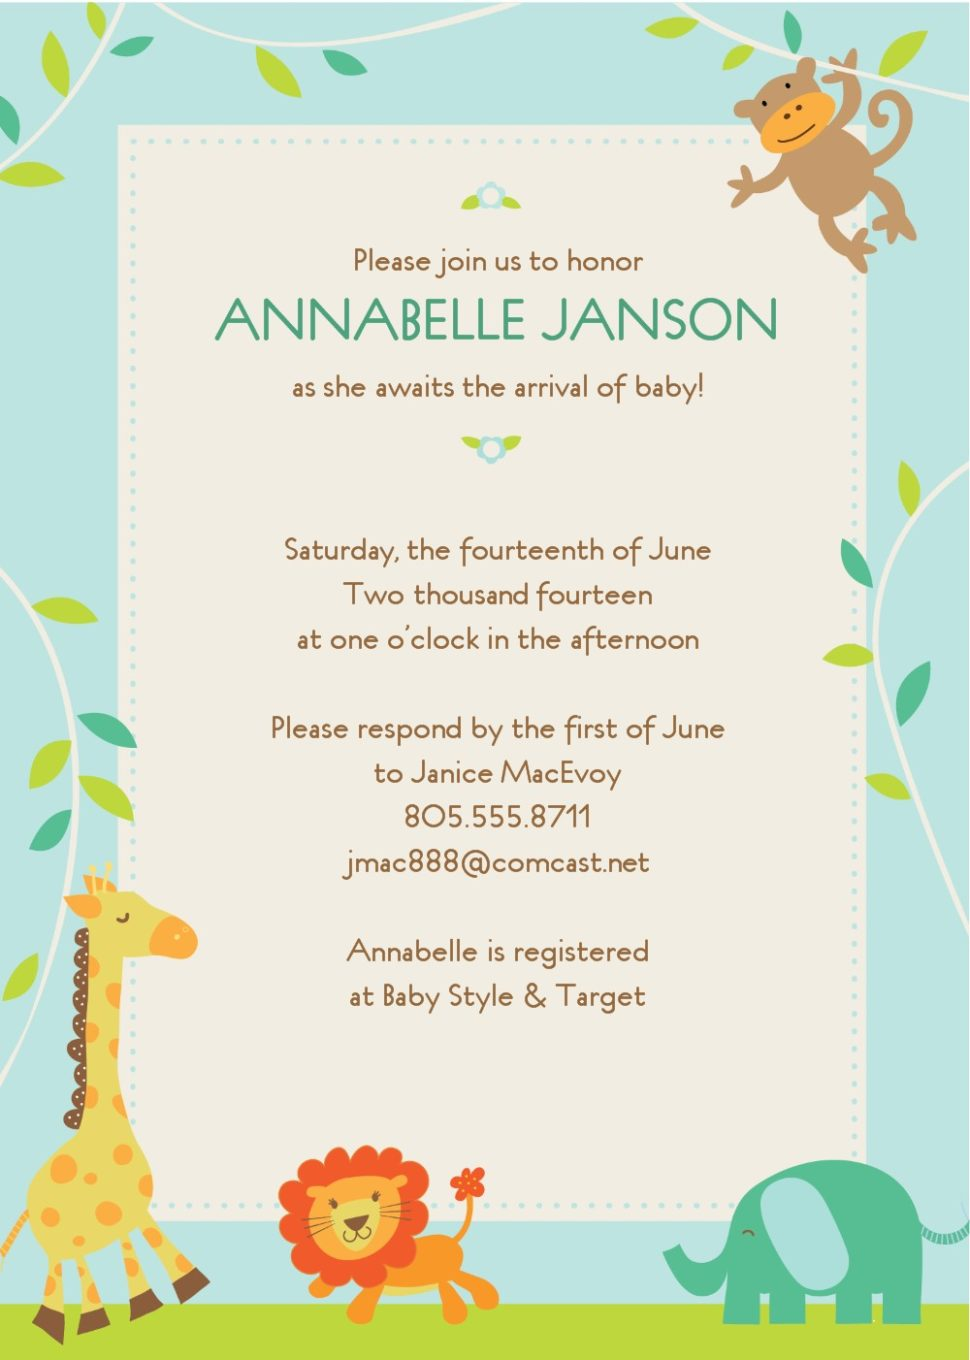 Medium Size of Baby Shower:sturdy Baby Shower Invitation Template Image Concepts Baby Shower Invitation Template Full Size Of Colorsbaby Shower Invite Template Free Printable Baby Shower Invite Template Indesign